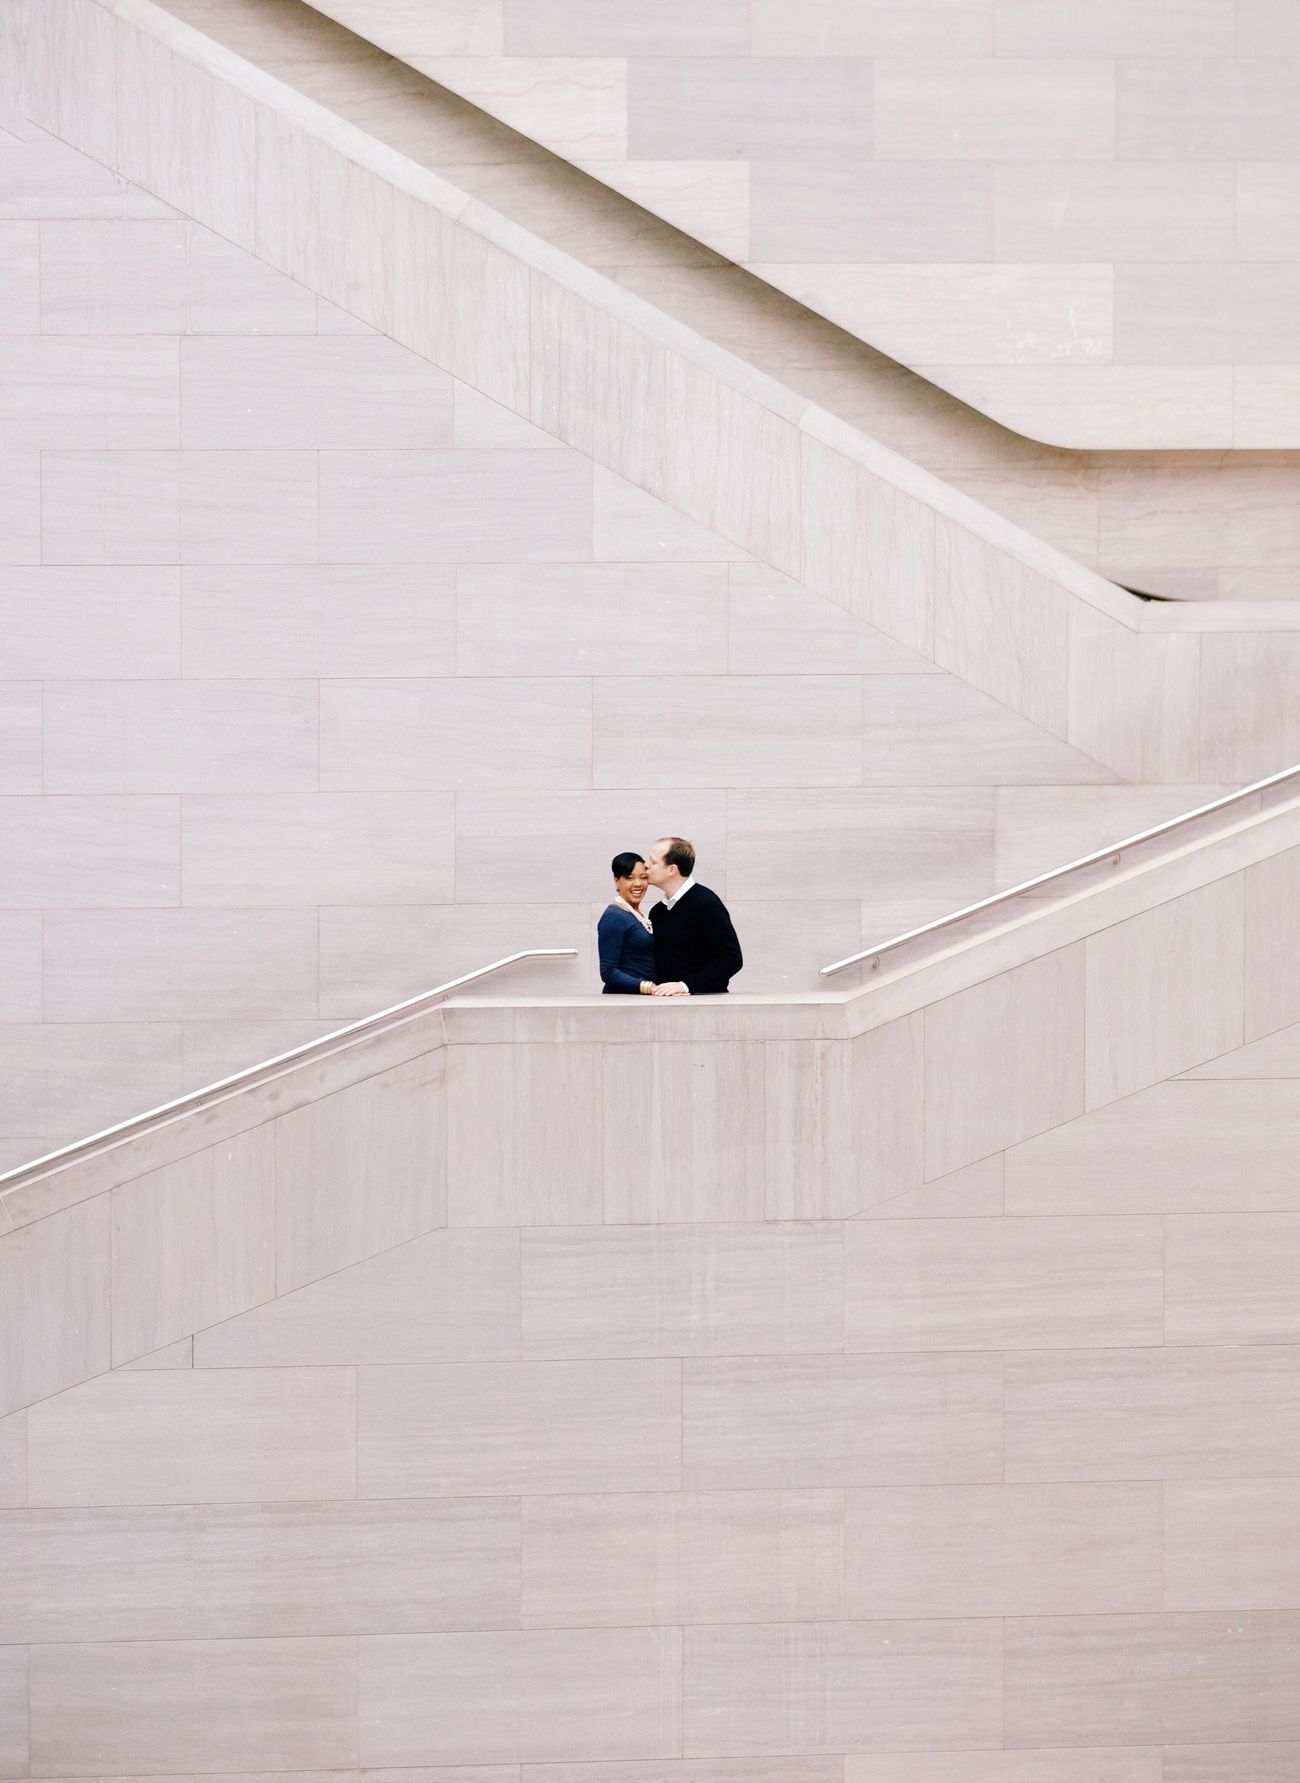 Art of love Architecture Steps And Staircases VSCO Love Xt1 Portrait Washington DC National Gallery Of Art Fujifilm_xseries Vscoportrait Vscocam FUJIFILM X-T1 Natural Light Portrait The Week On EyeEm